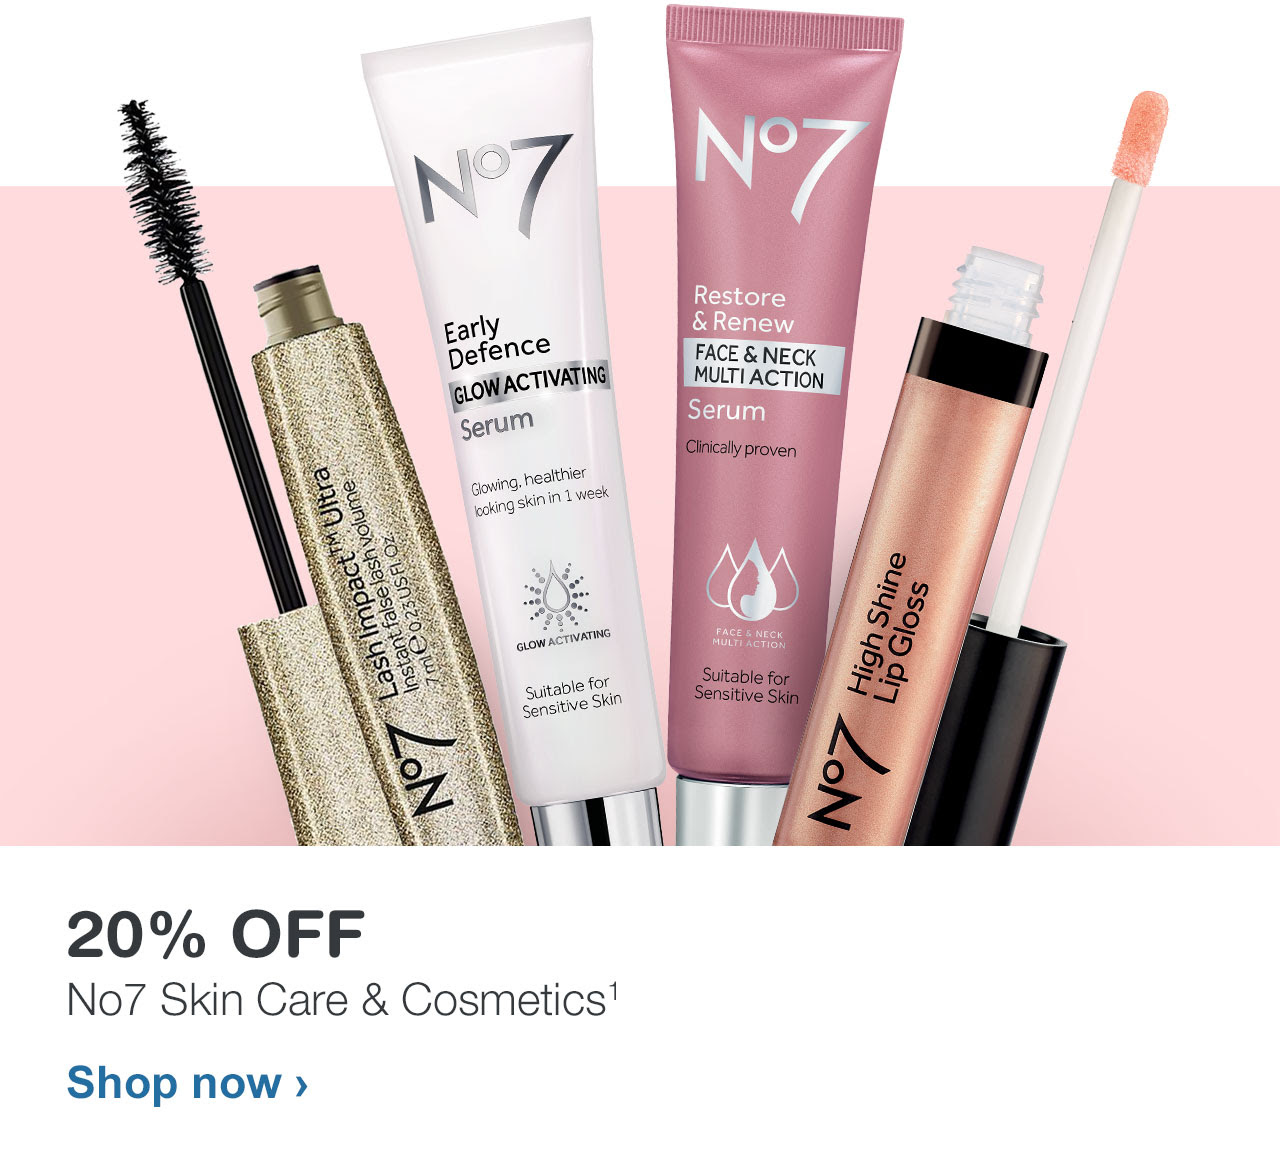 20% OFF No7 Skin Care and Cosmetics